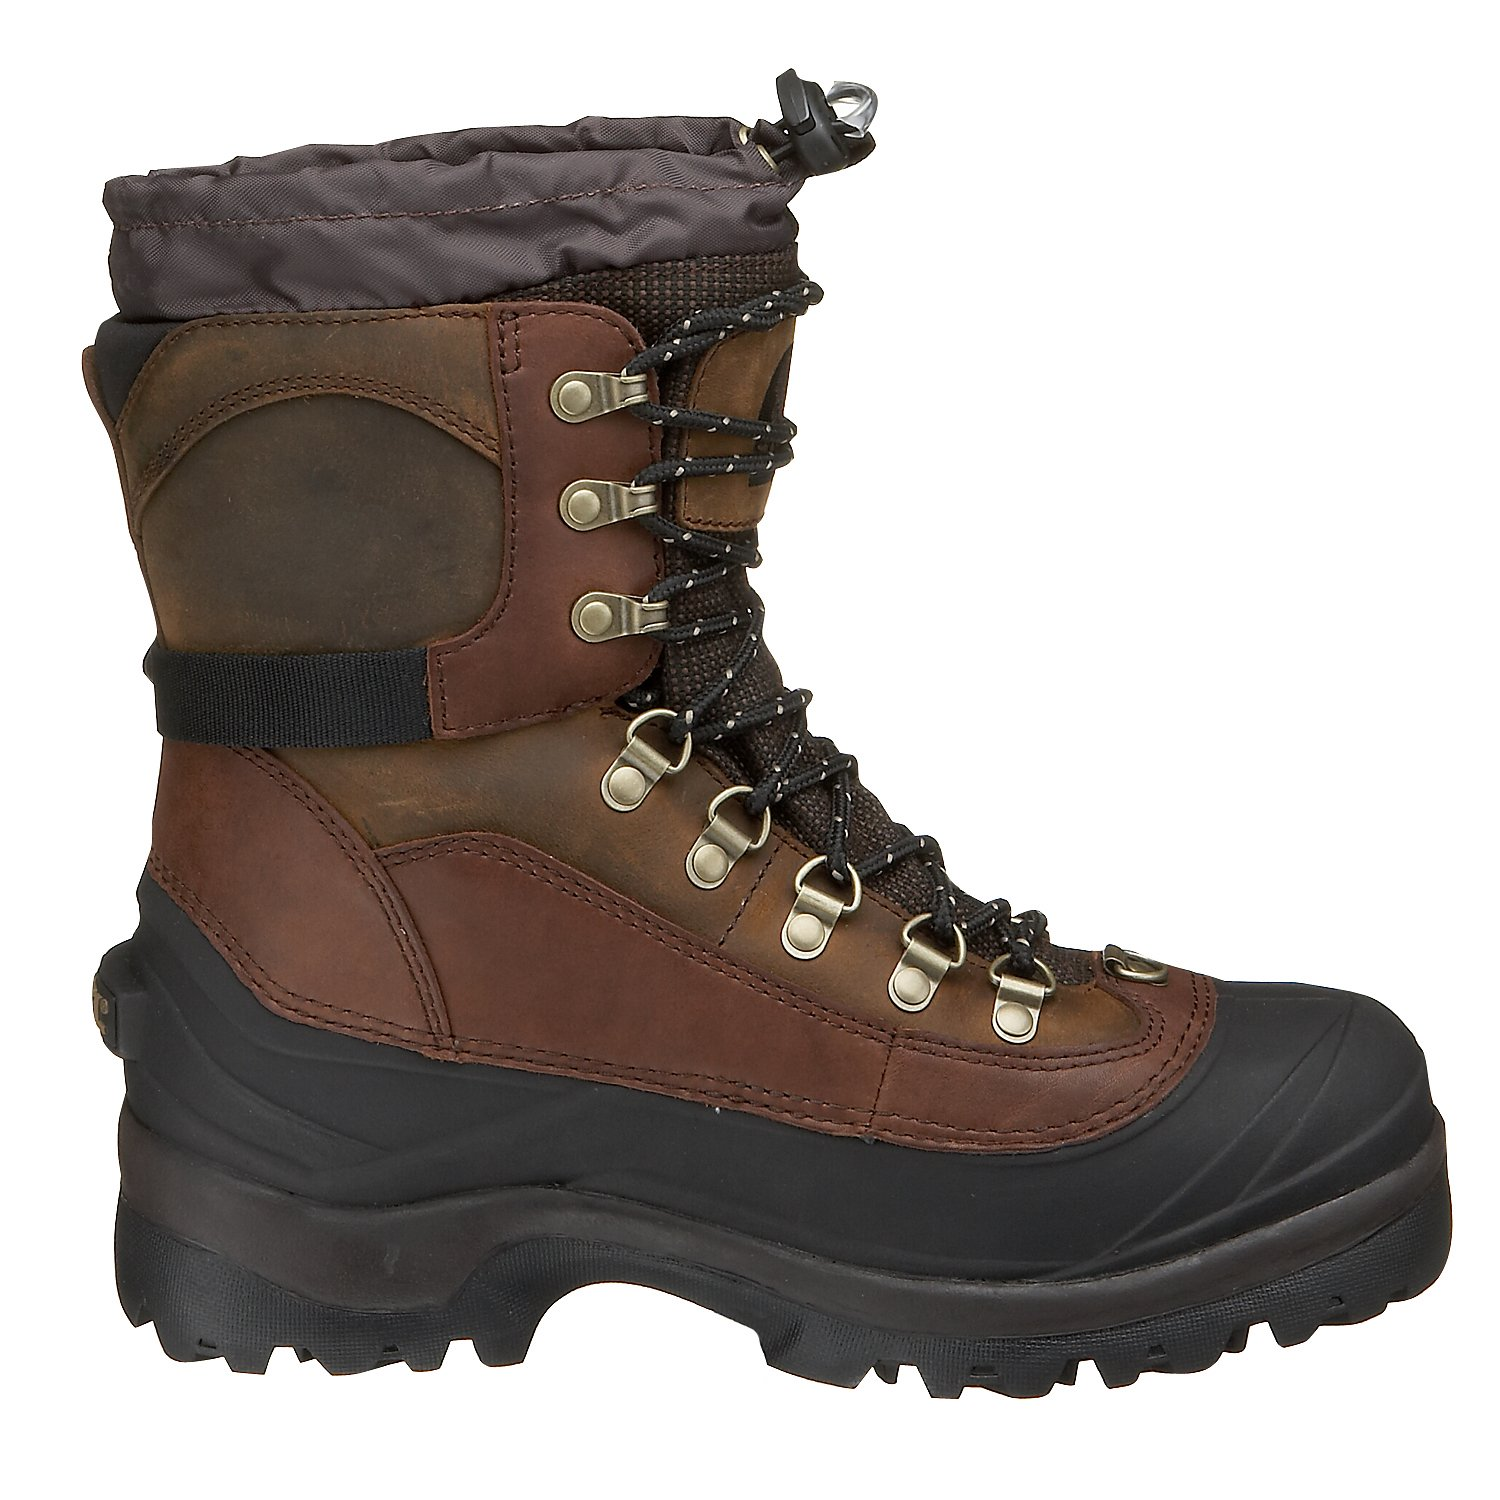 Sorel Men's Conquest Boots | Cheap Winter Boots For Sale